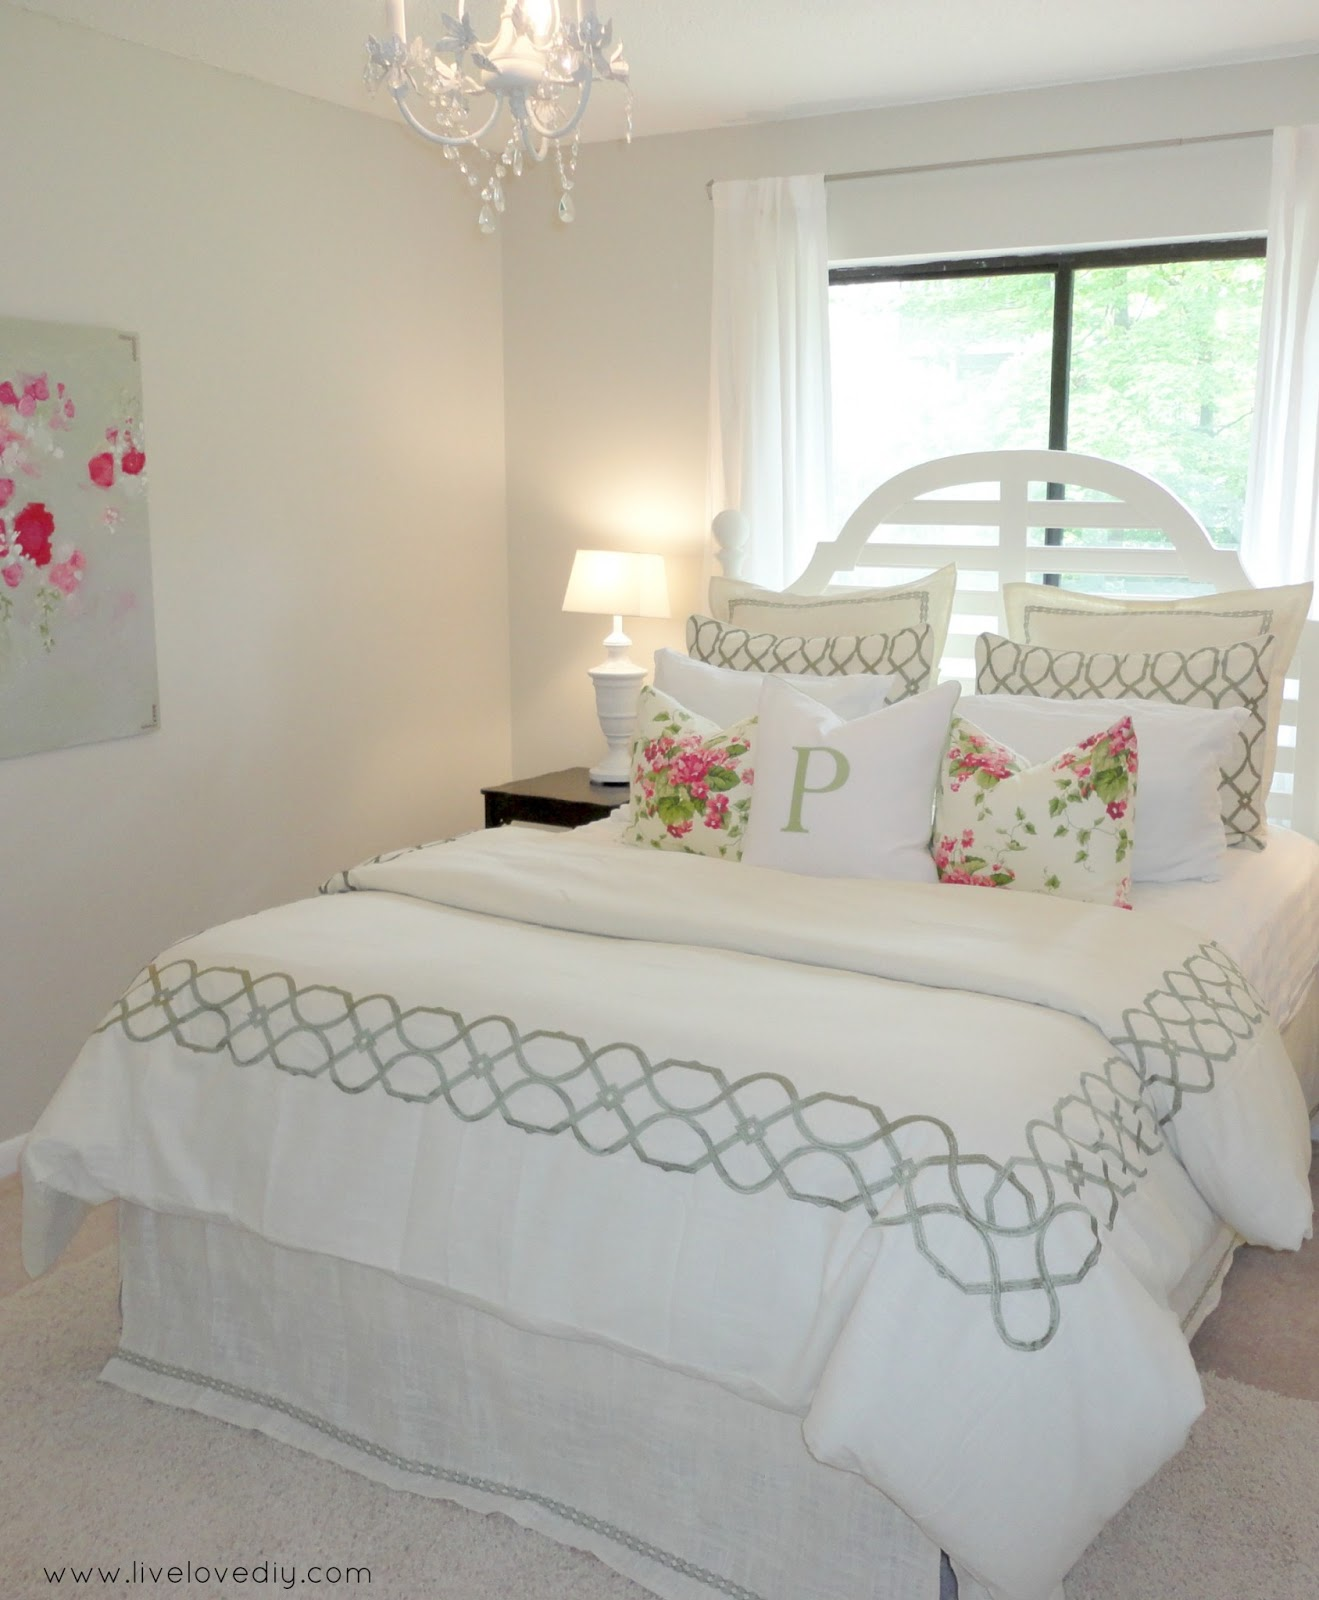 Livelovediy decorating bedrooms with secondhand finds for How to decorate a bedroom